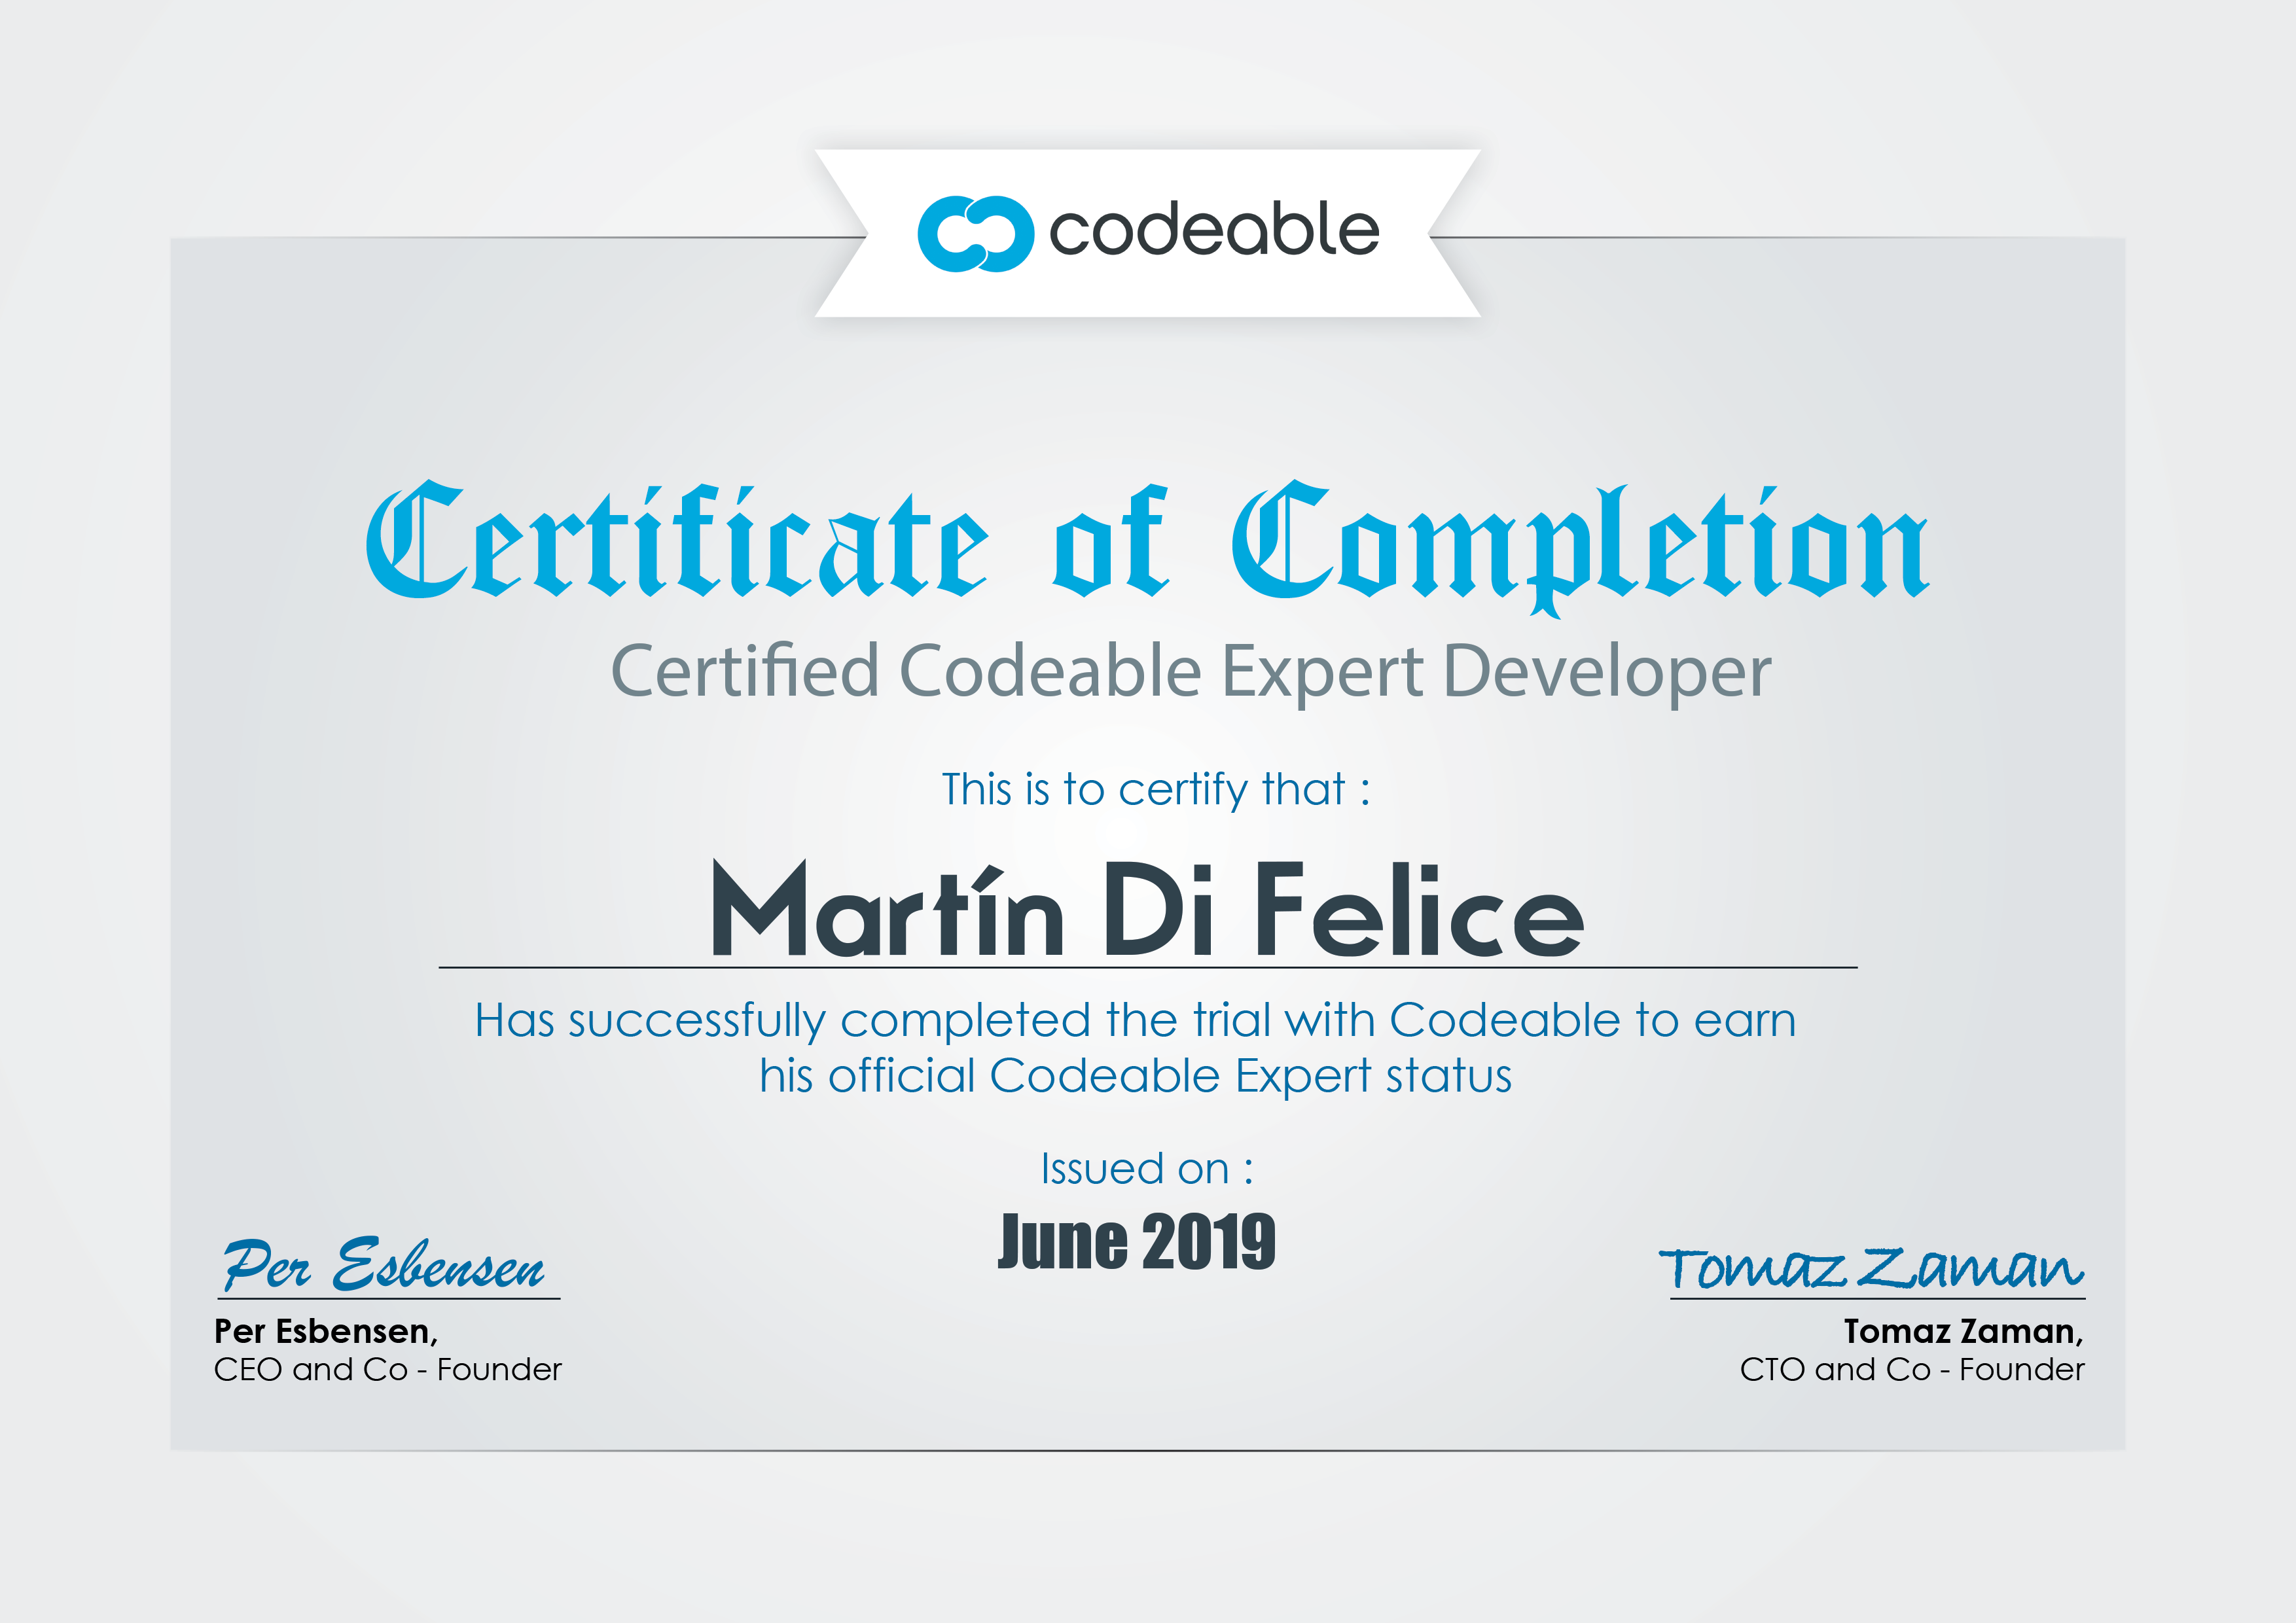 Martin's Codeable Certificate